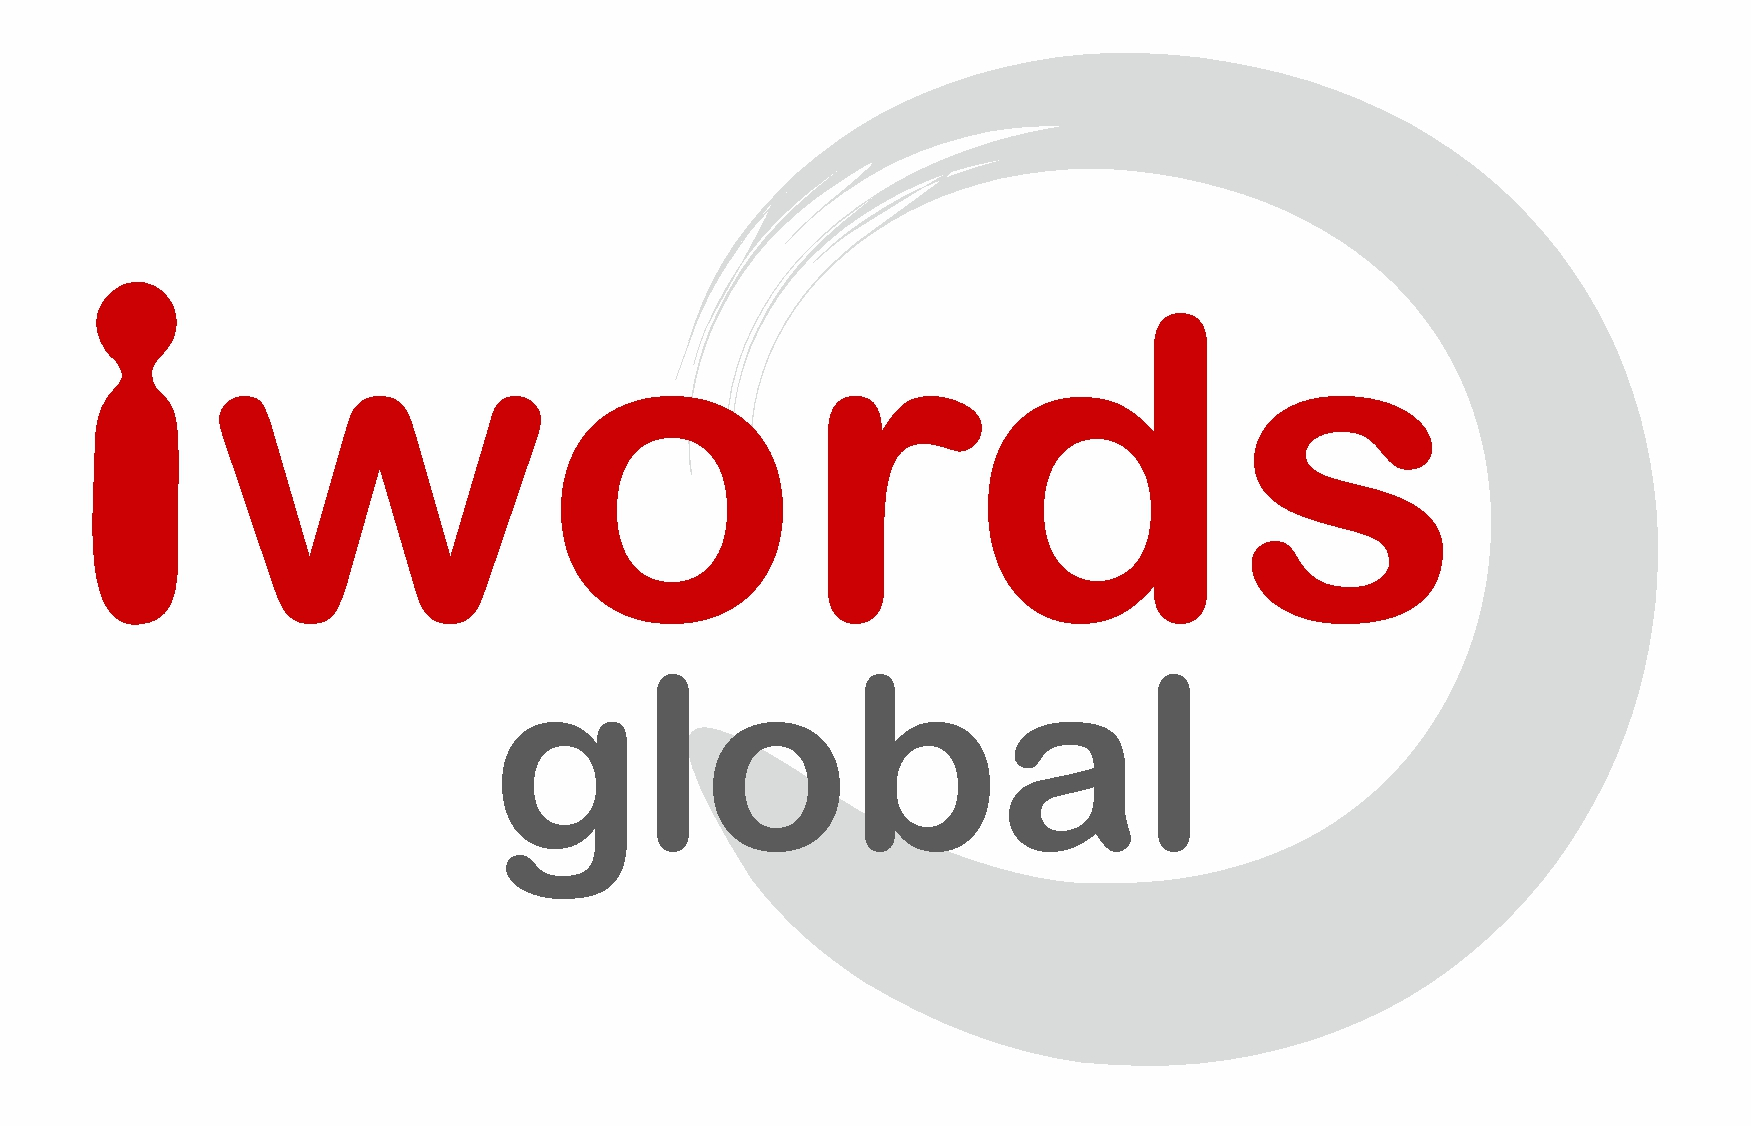 Iwords_global_logo_colors_big.jpg